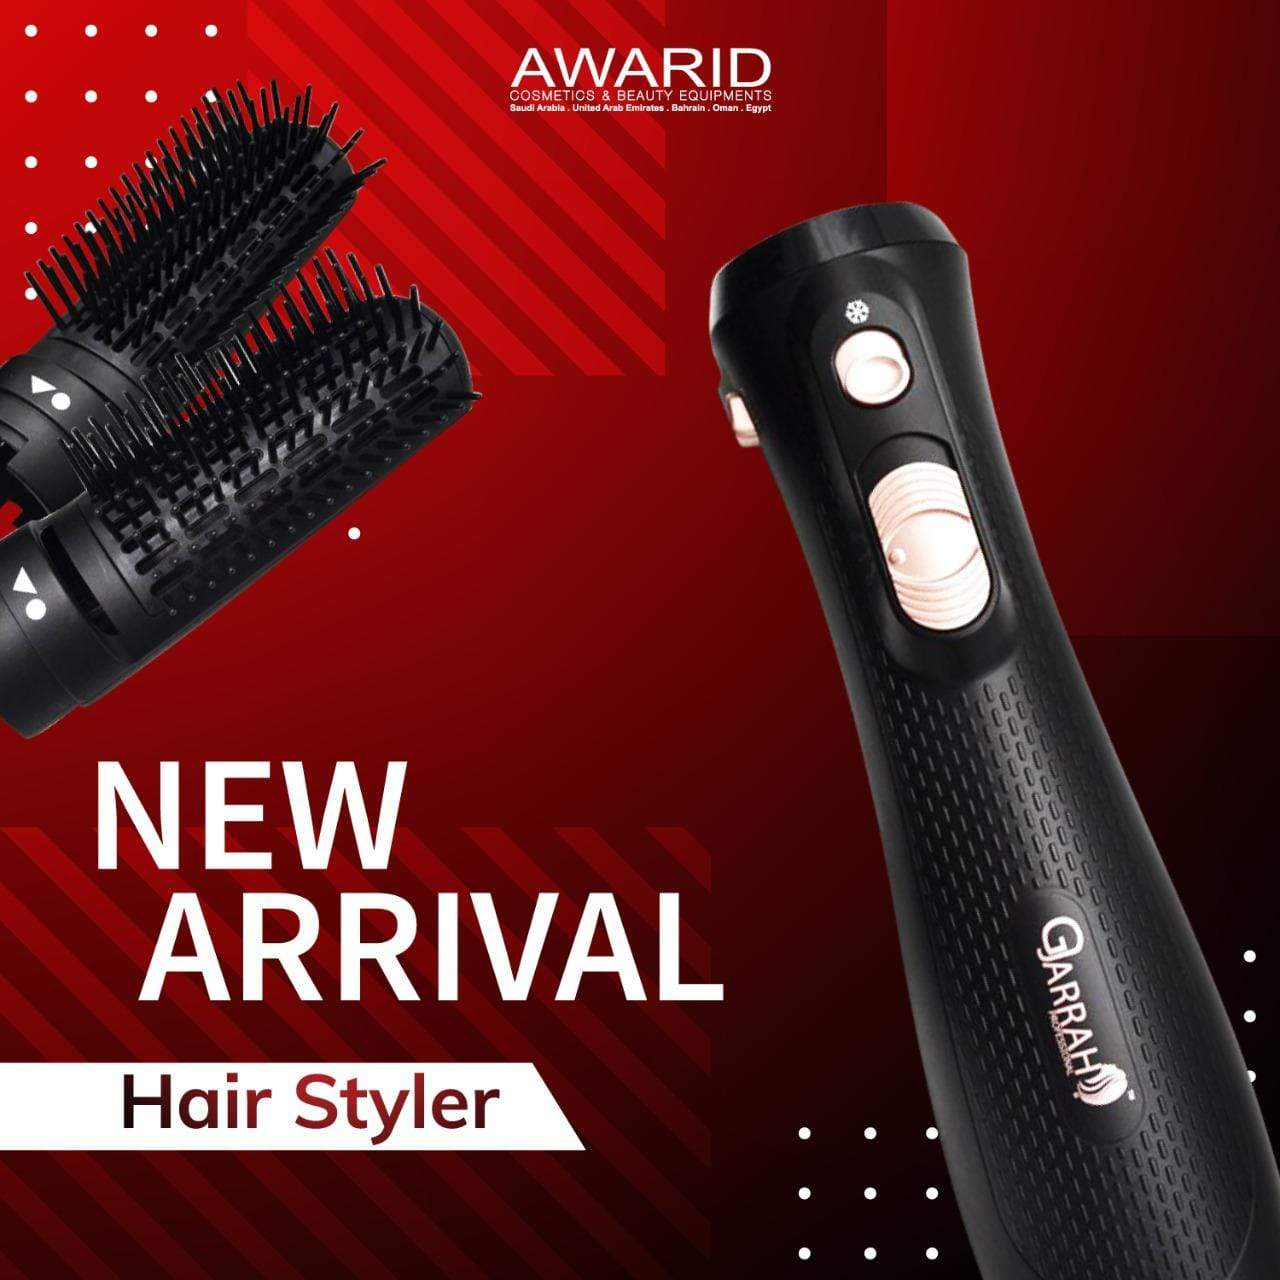 Hair styler, Hair machine, Styling machine, Hair equipment, Blower, Hair dryer